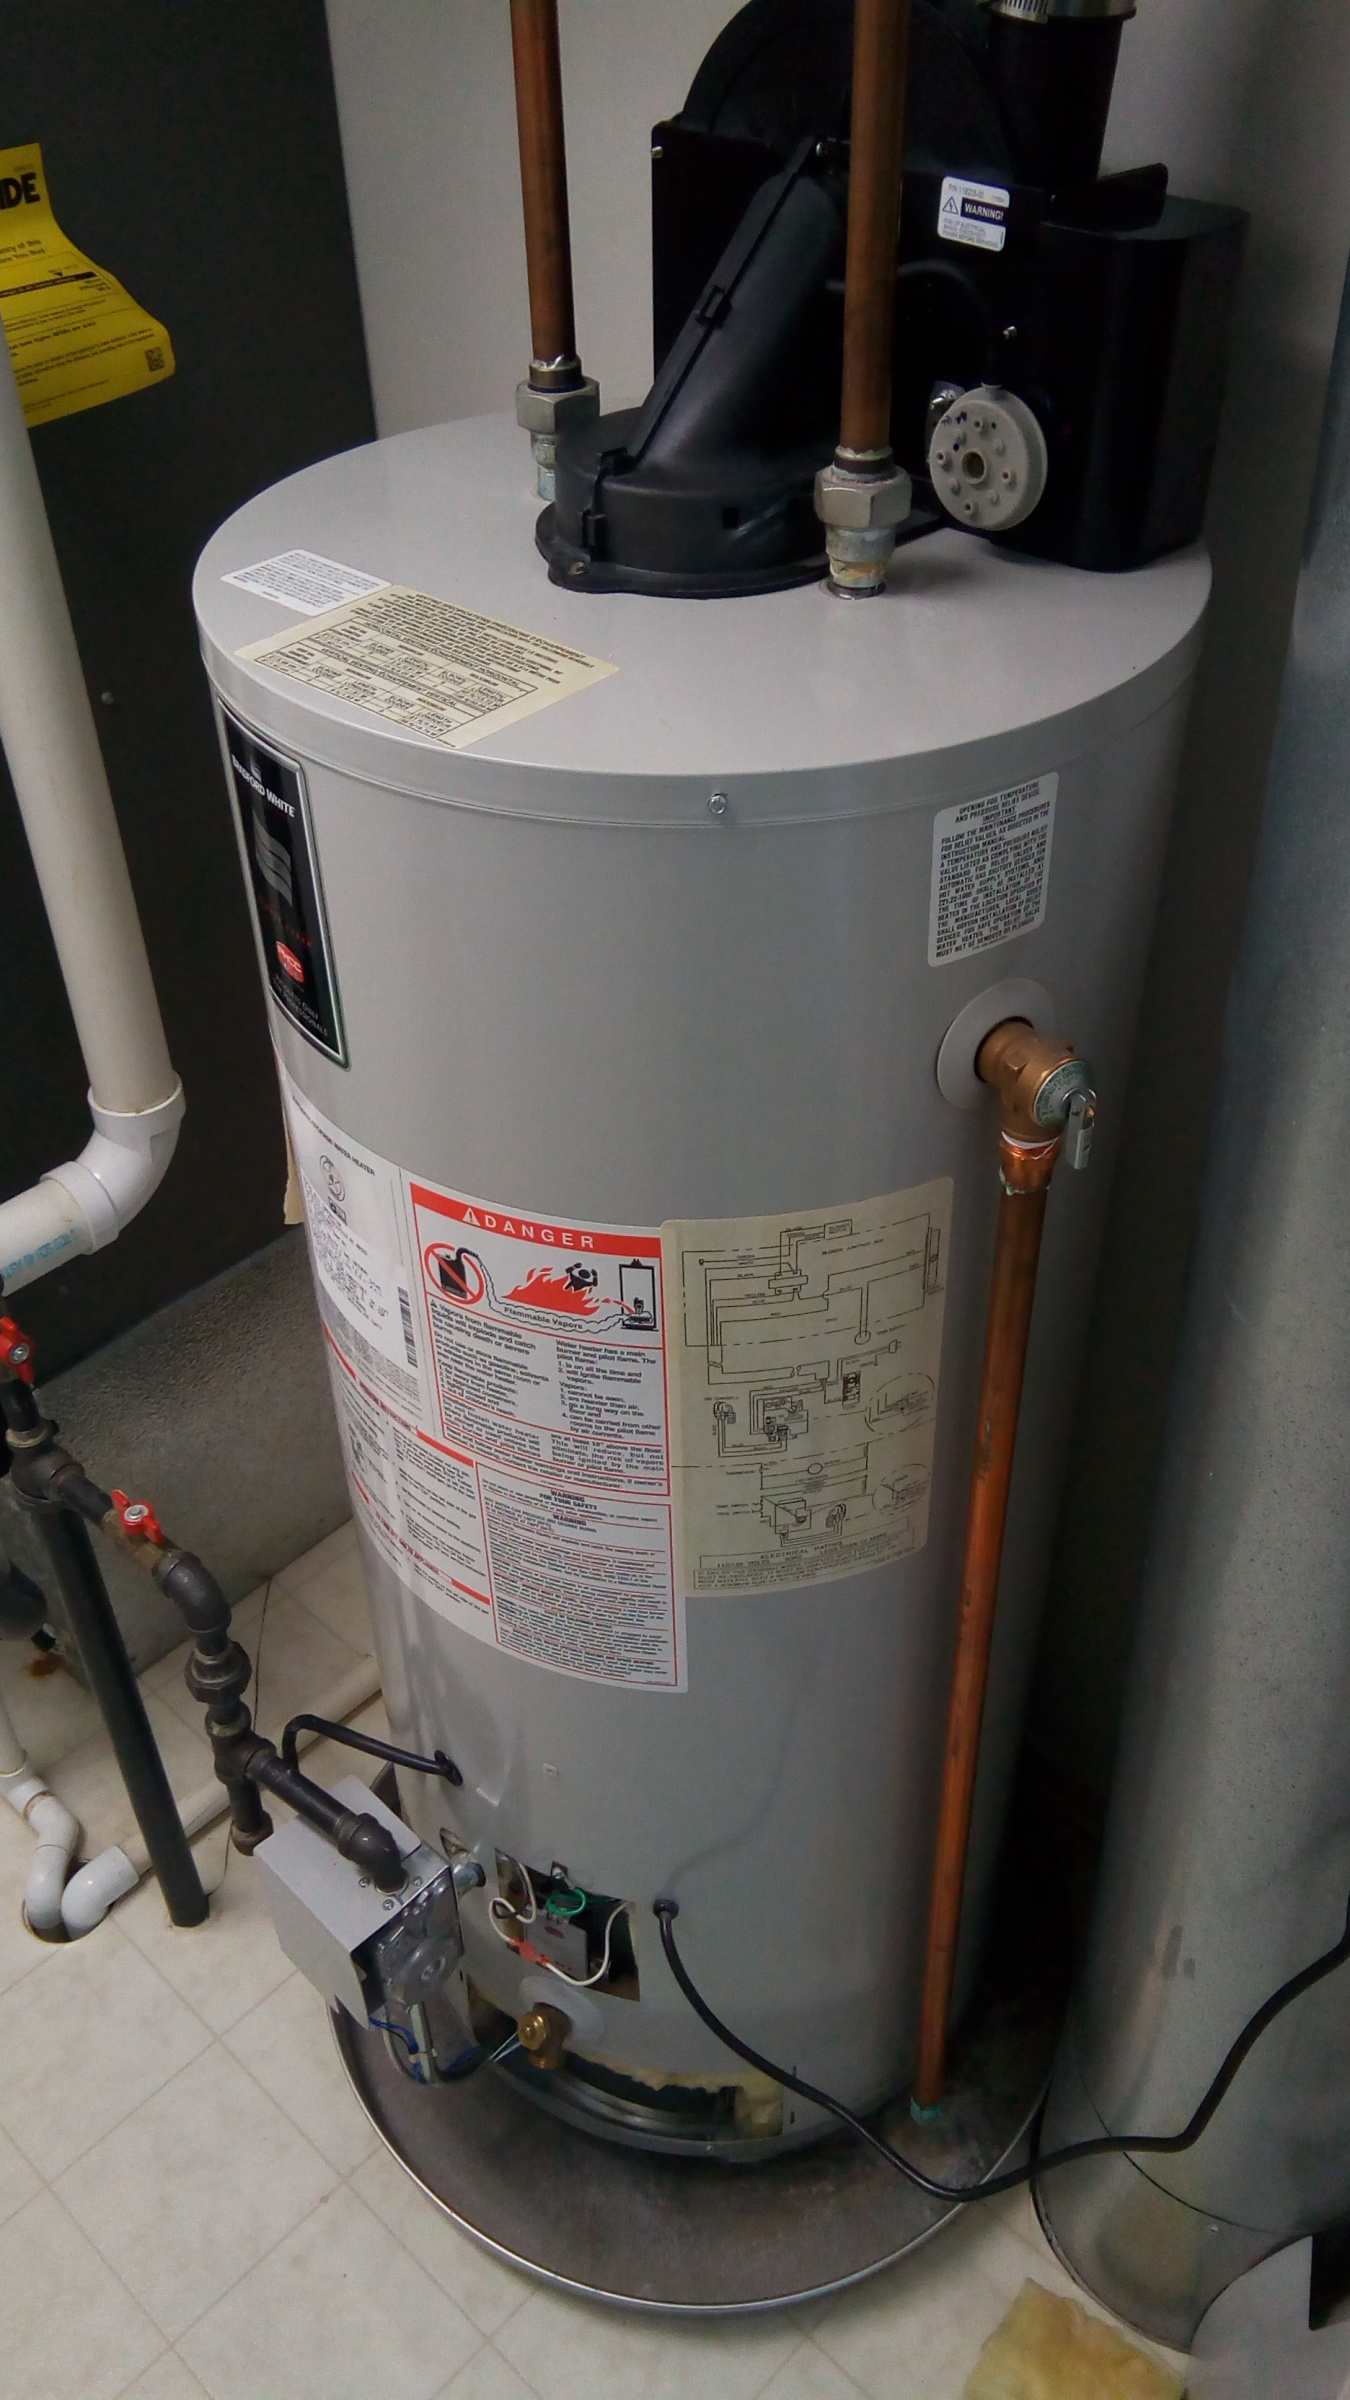 Water Heater Condensate Amp Vent Pitch Issues Plumbing Diy Home Improvement